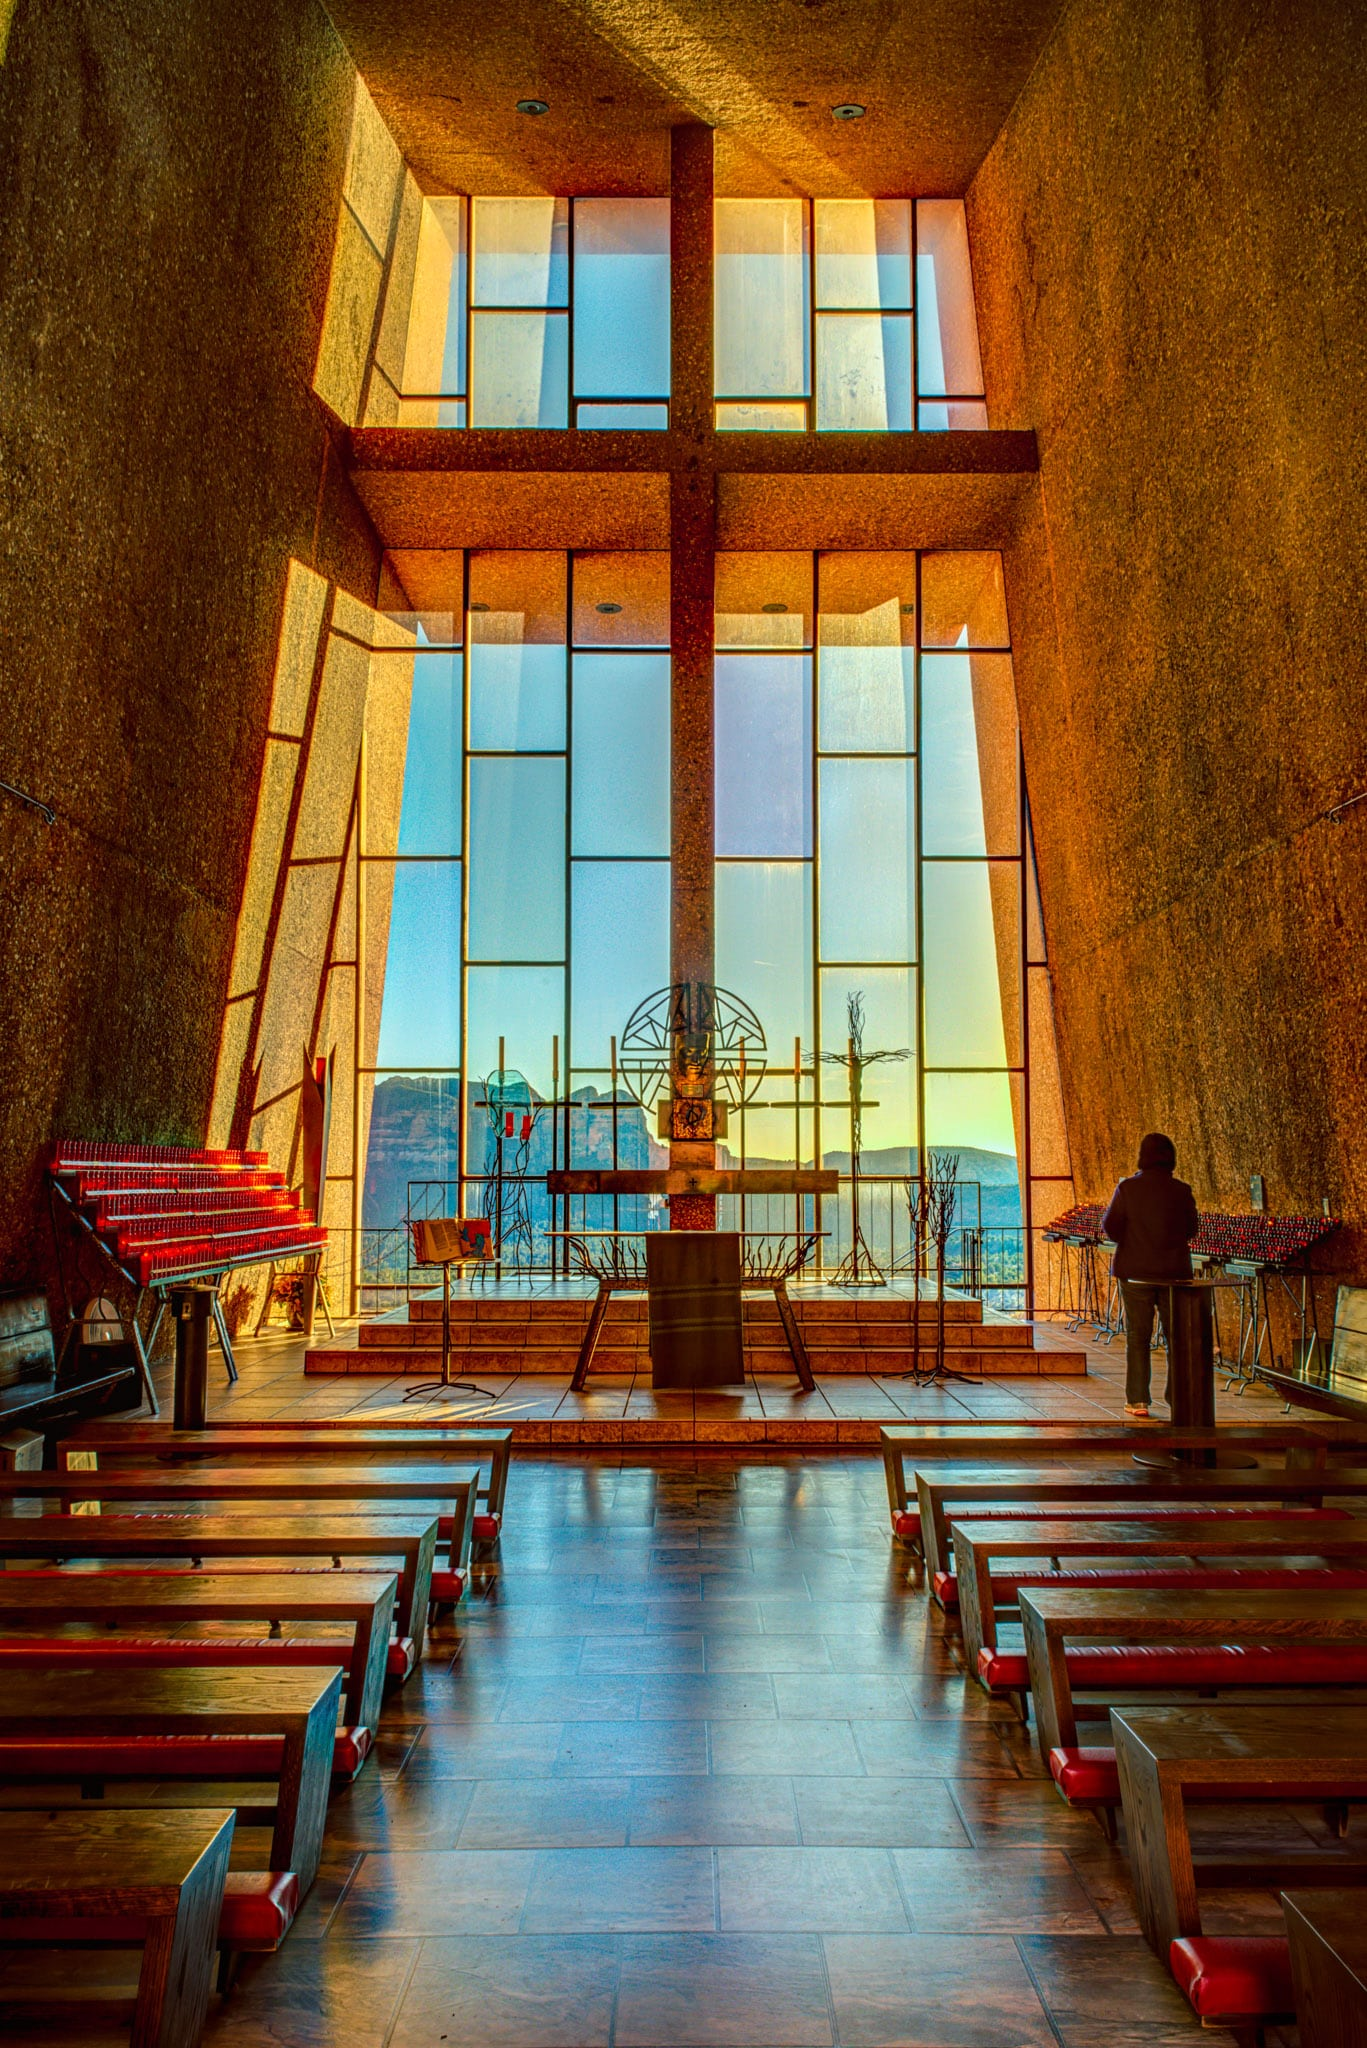 An interior view of the sanctuary of the Chapel of the Holy Cross in Sedona, Arizona.